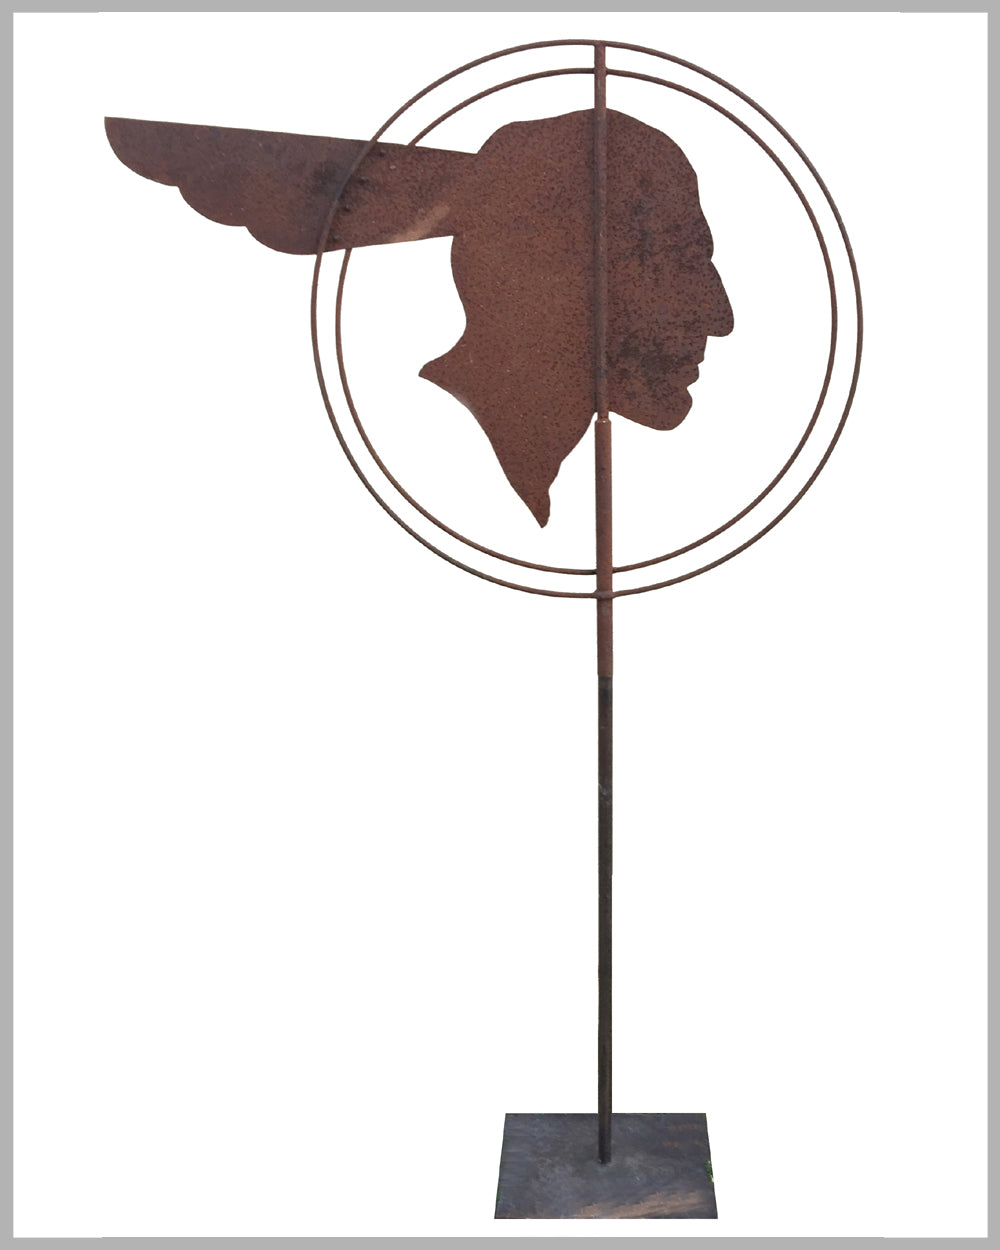 1930's Pontiac dealers' metal weather vane